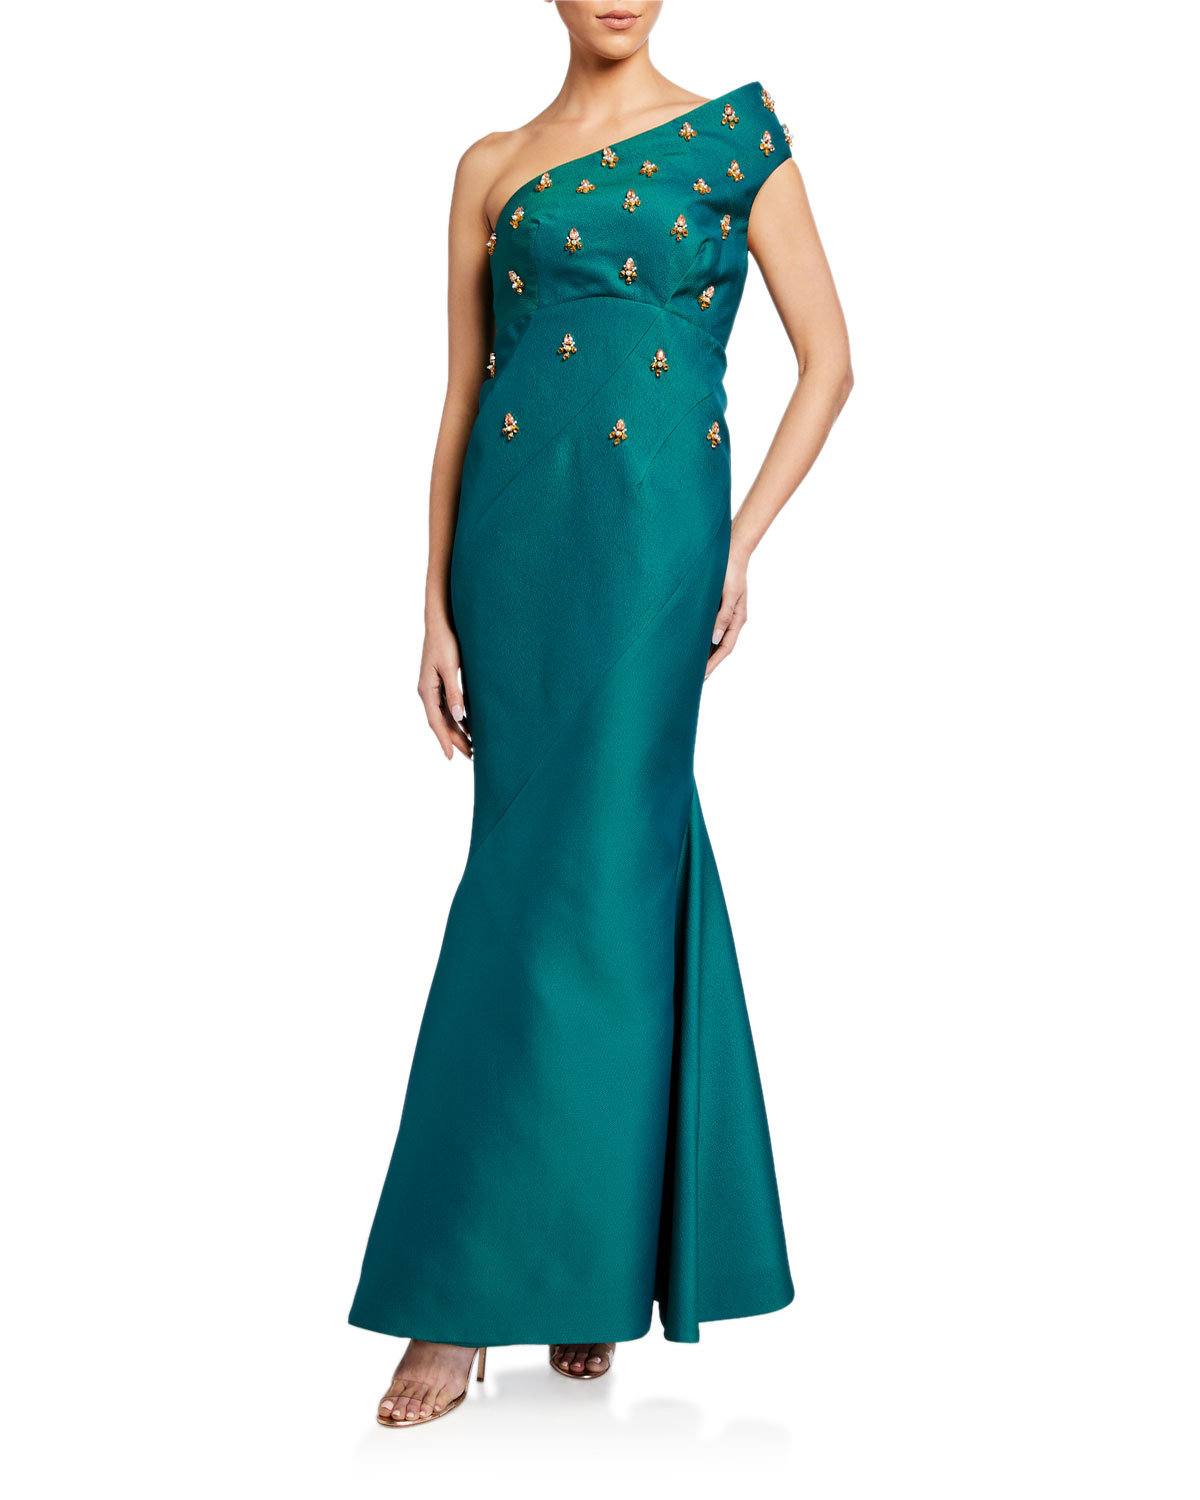 Zac Posen One Shoulder Gown With Embroidery